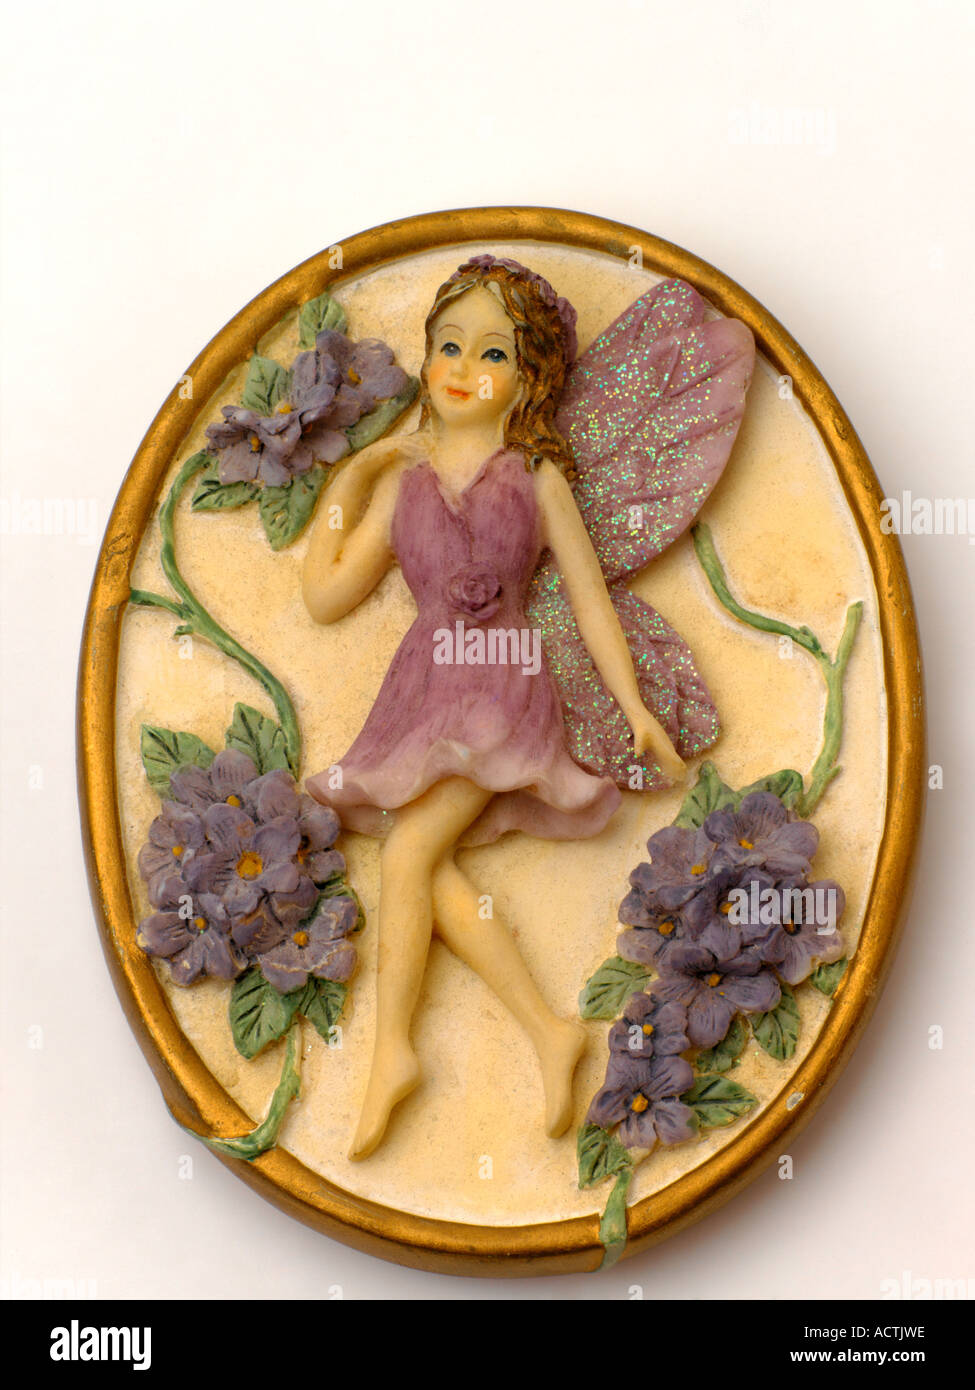 Pottery Cast of a Flower Fairy - Stock Image